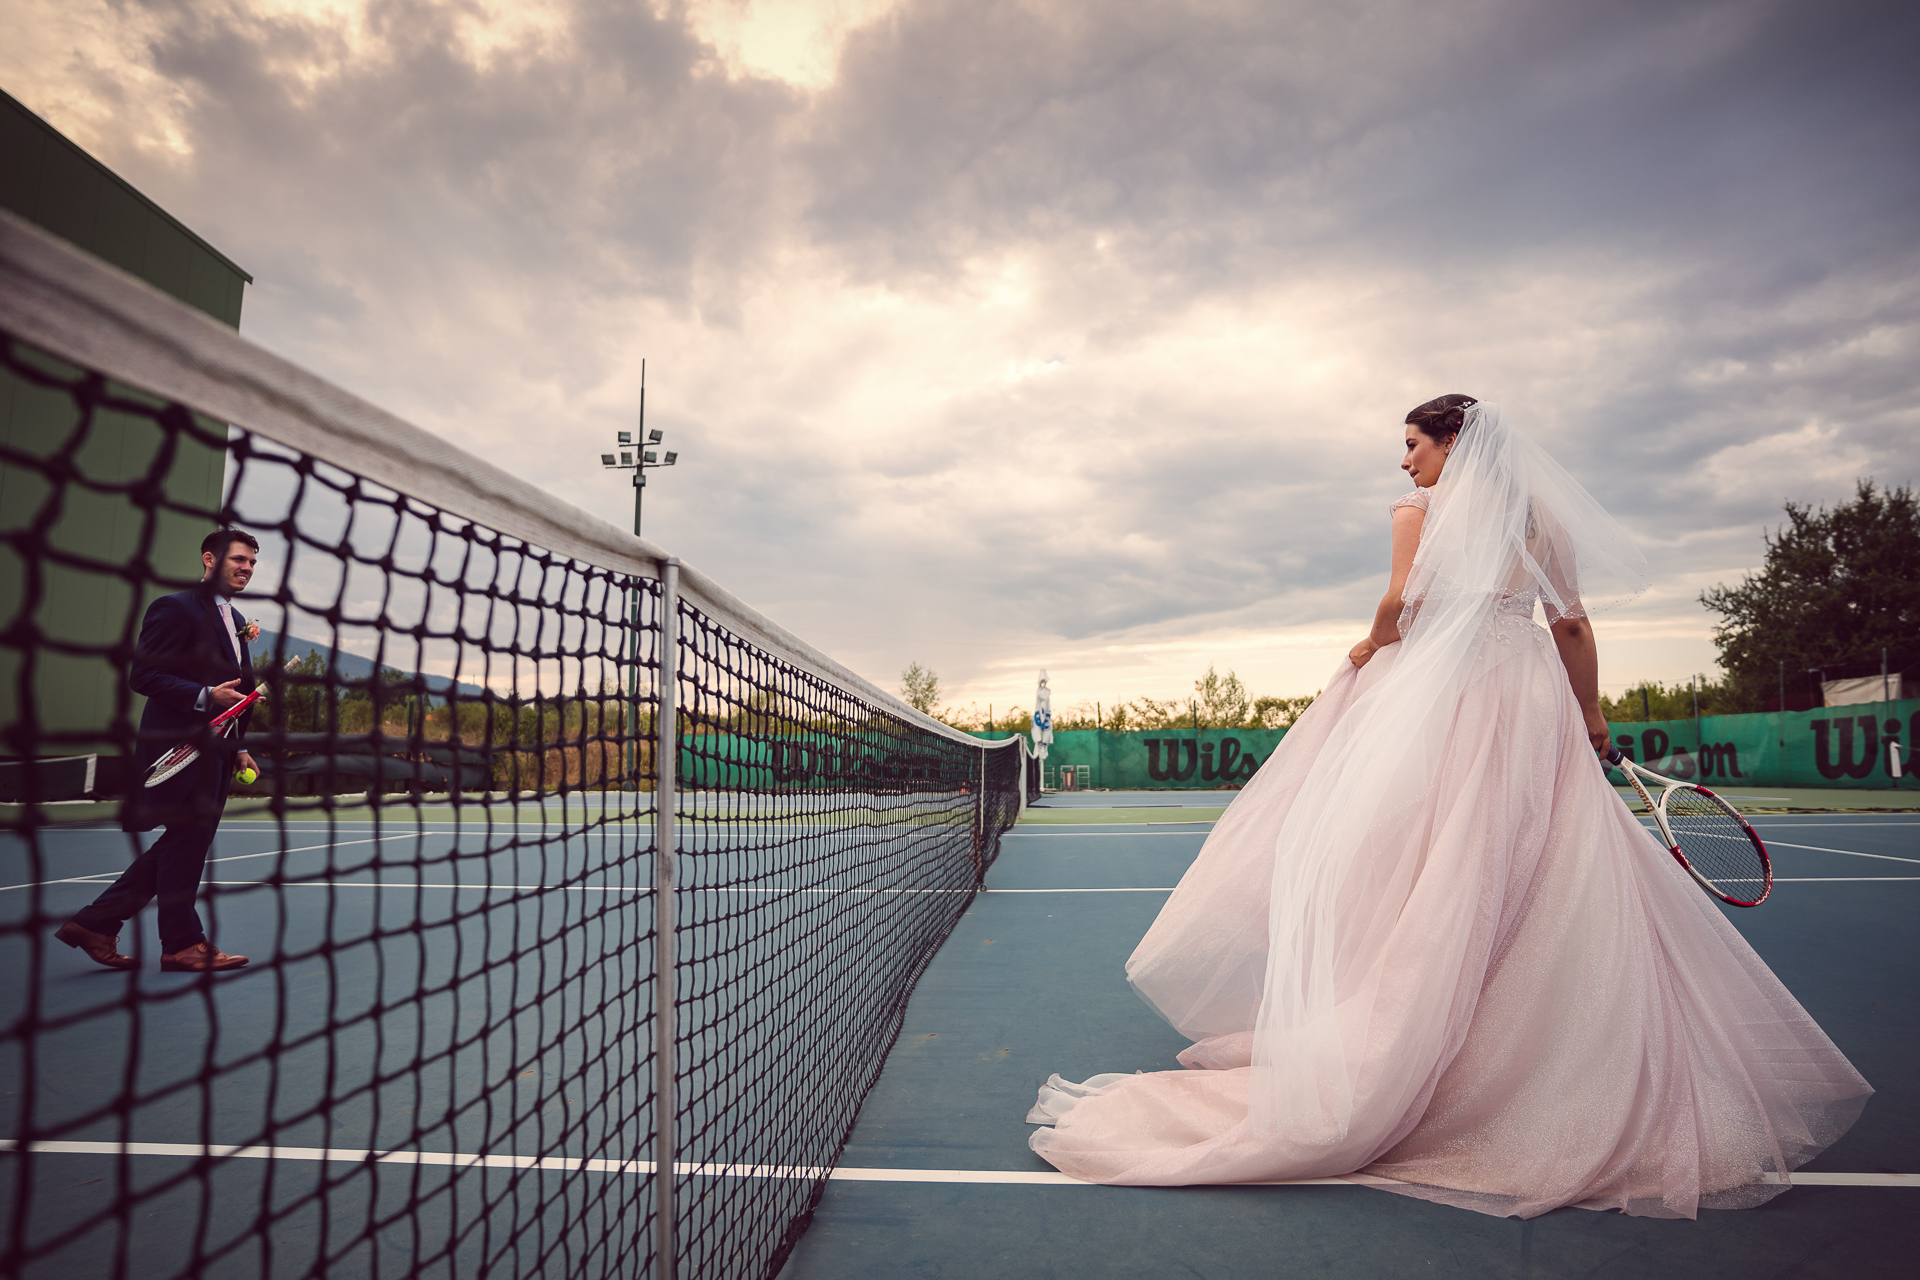 Sofia Wedding Tennis Couple Image | The couple take to the courts while indulging in spontaneity